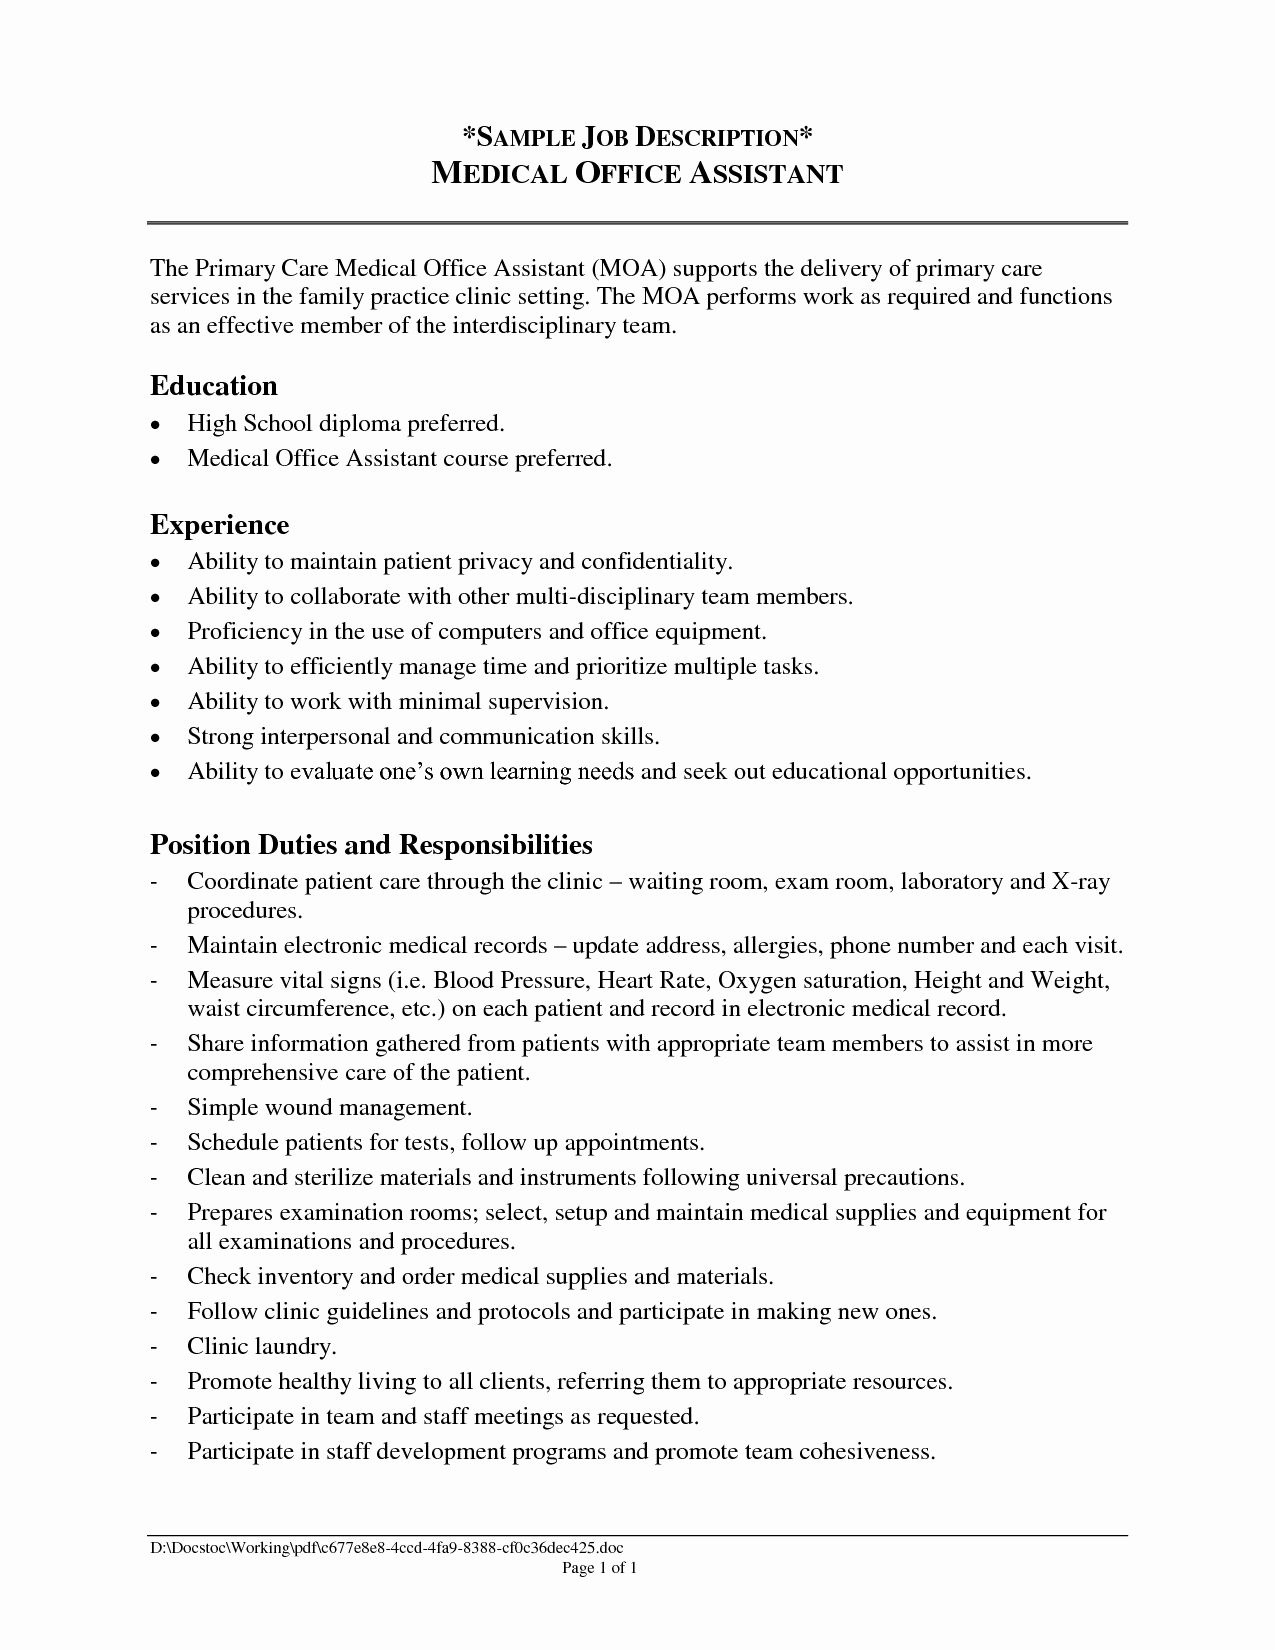 23 Medical Office Assistant Job Description Resume In 2020 With